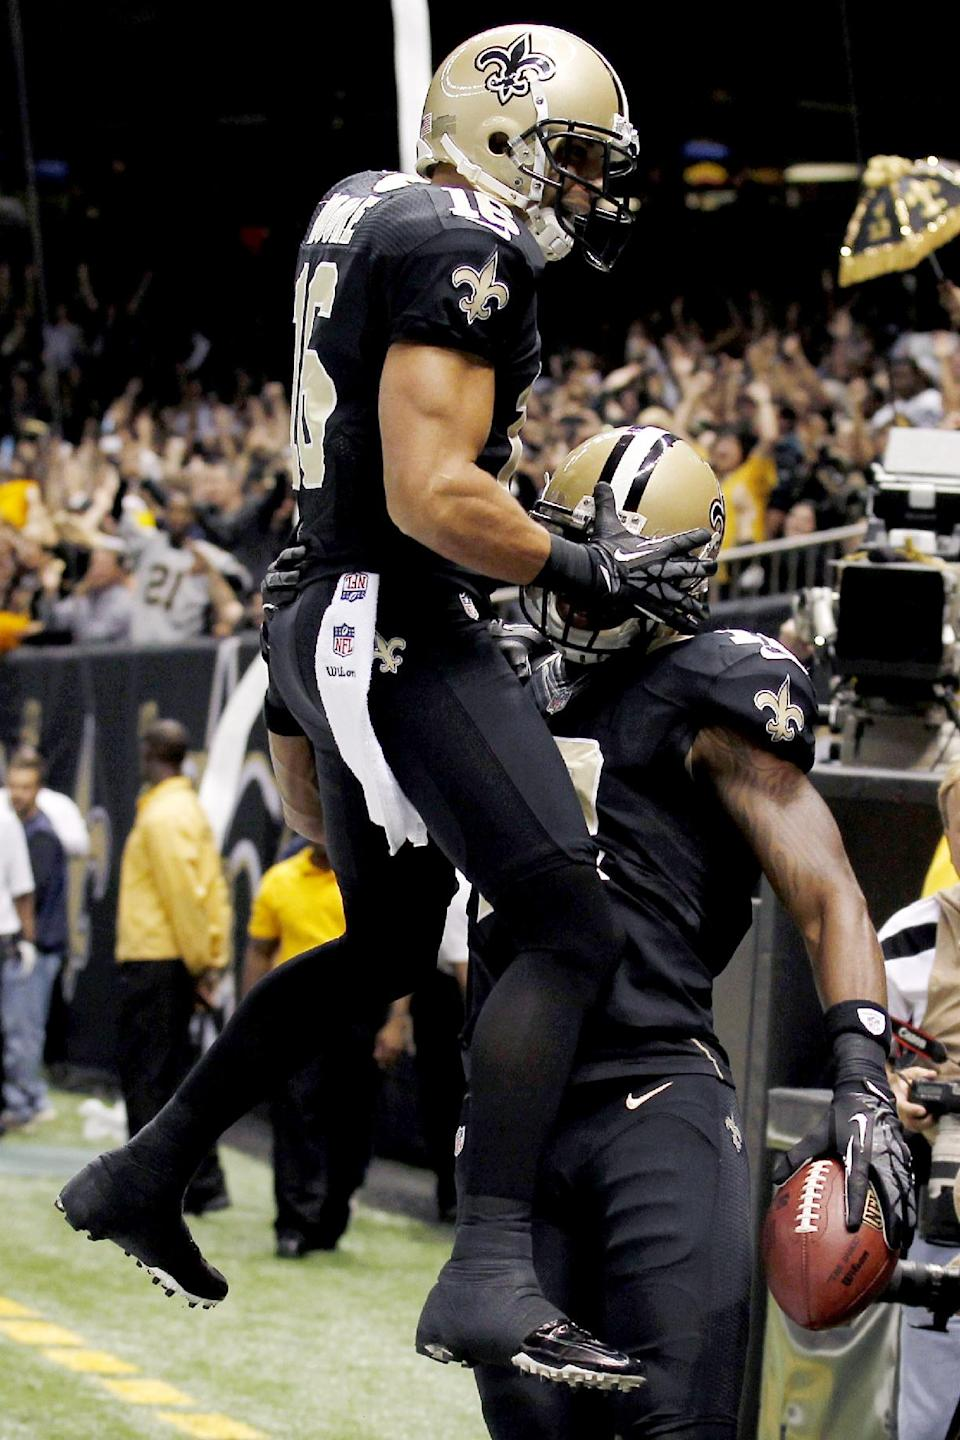 New Orleans Saints wide receiver Lance Moore (16) leaps on wide receiver Marques Colston after Colston's touchdown reception during the first half of an NFL football game against the Philadelphia Eagles at Mercedes-Benz Superdome in New Orleans, Monday, Nov. 5, 2012. (AP Photo/Bill Haber)